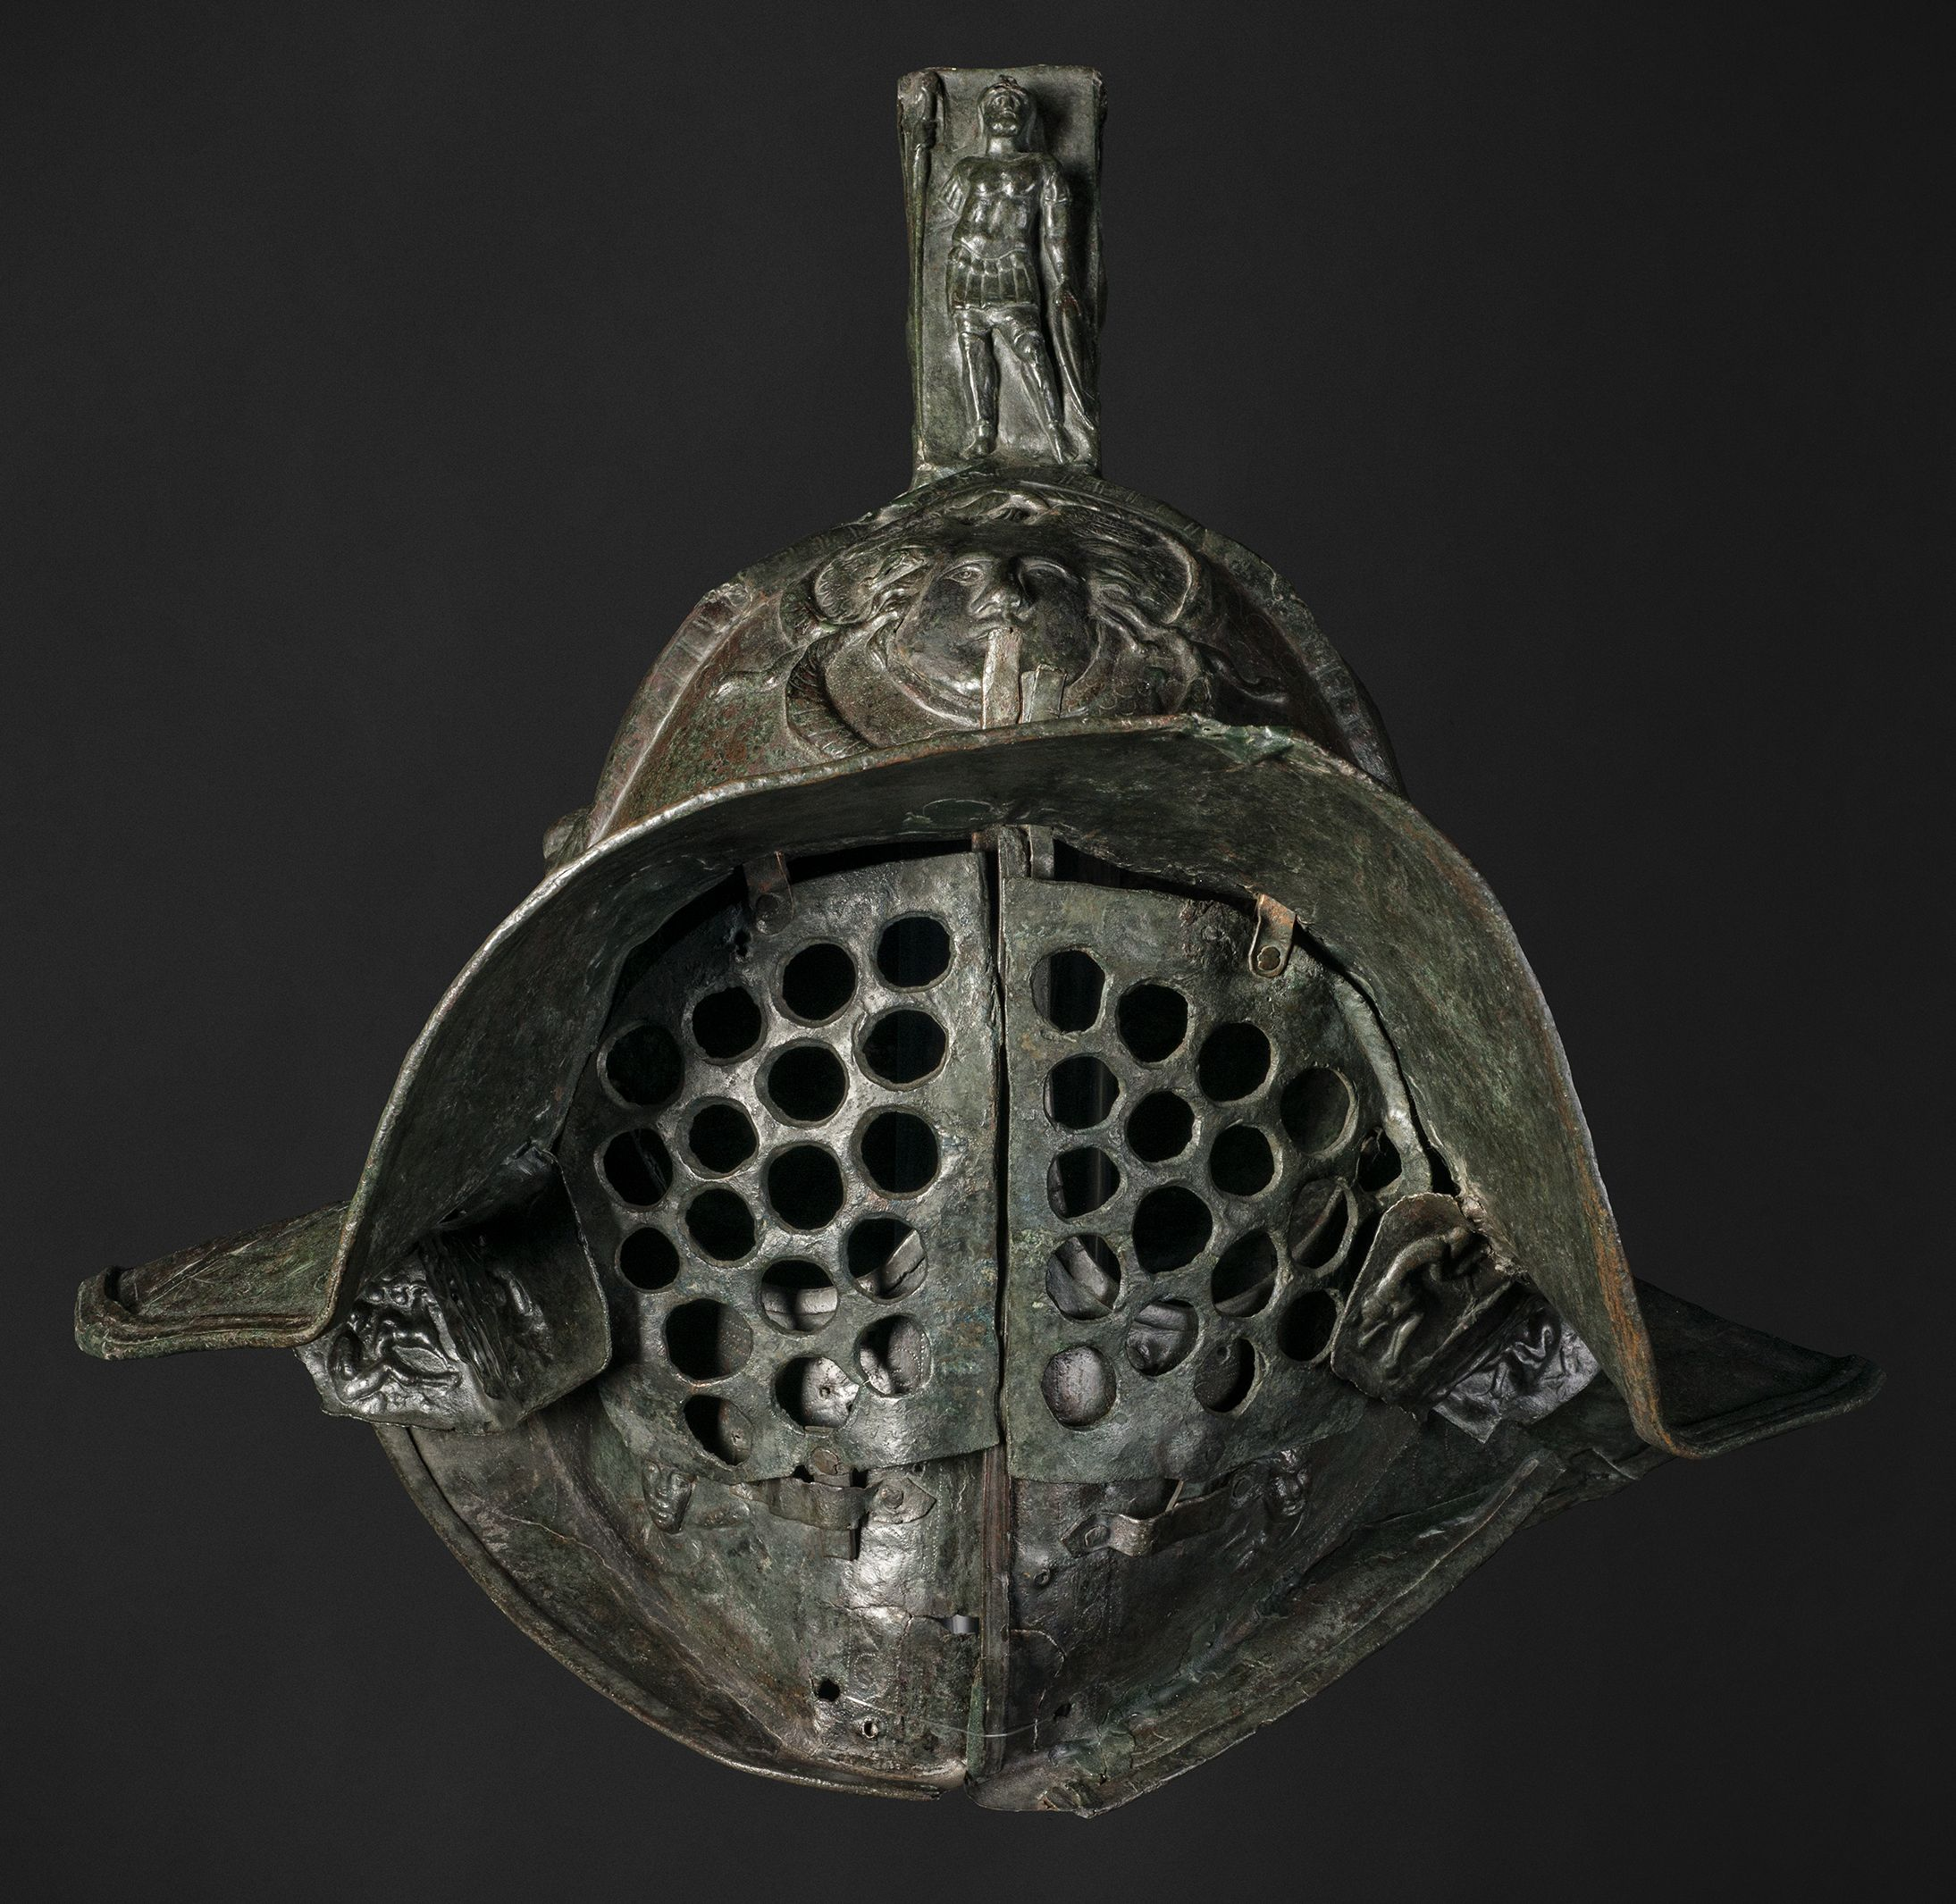 Helmet of a Murmillo, from the Barracks of the Gladiators of Pompeii, Bronze, AD 1 © Museo Archeologico Nazionale, Naples